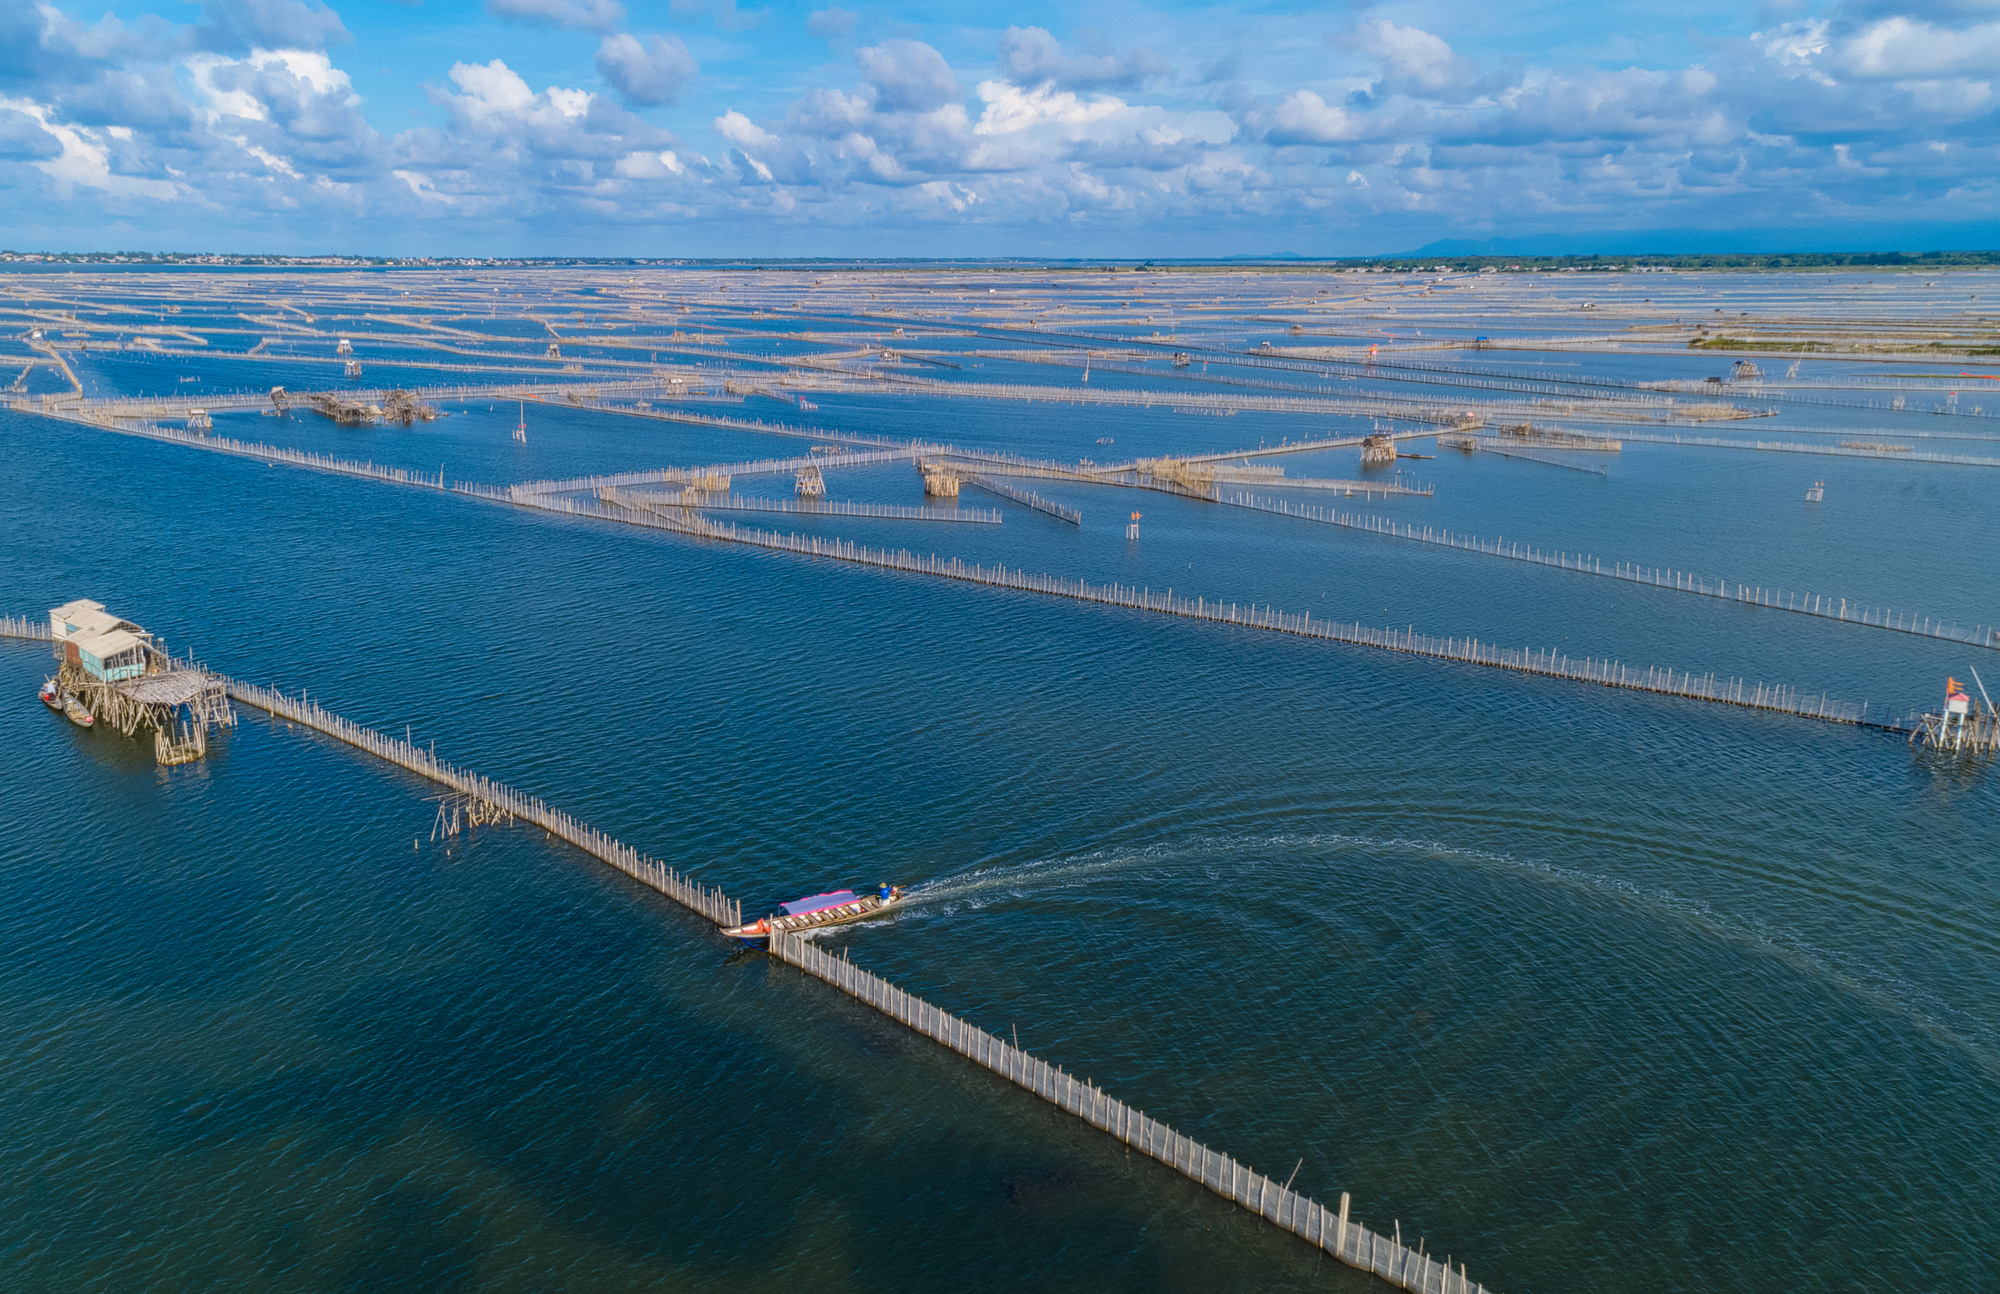 An aerial photo of the Tam Giang Lagoon and its network of fish pens in Thua Thien-Hue Province, Vietnam. Photo: Kelvin Long / Tuoi Tre